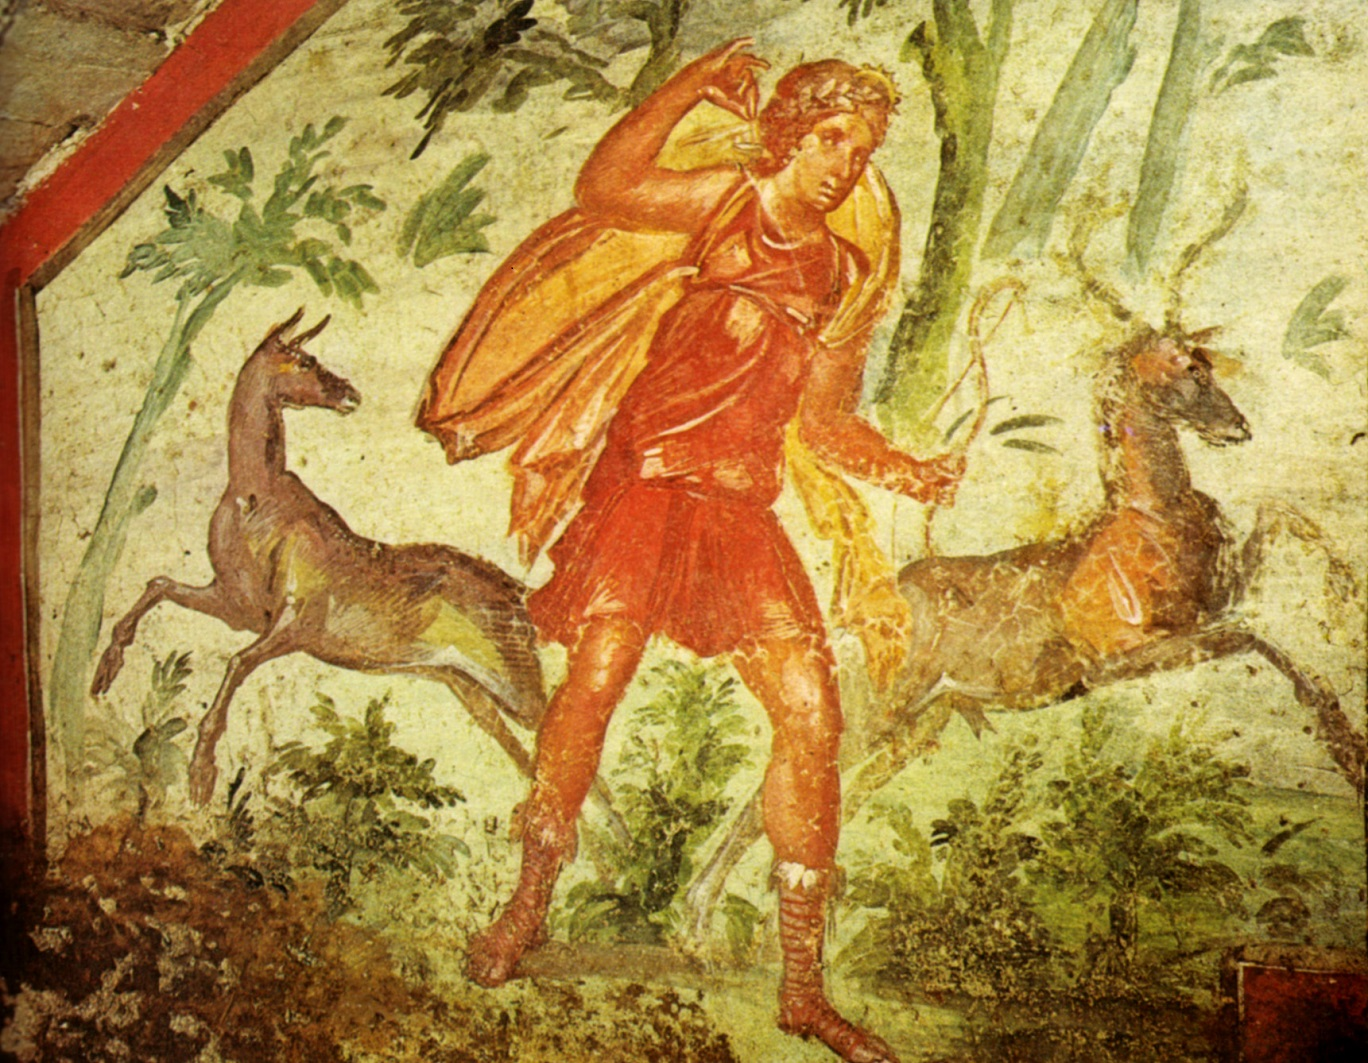 The Goddess Diana Hunting Source https://commons.wikimedia.org/wiki/File%3AIpogeo_di_via_livenza%2C_diana_cacciatrice.jpg